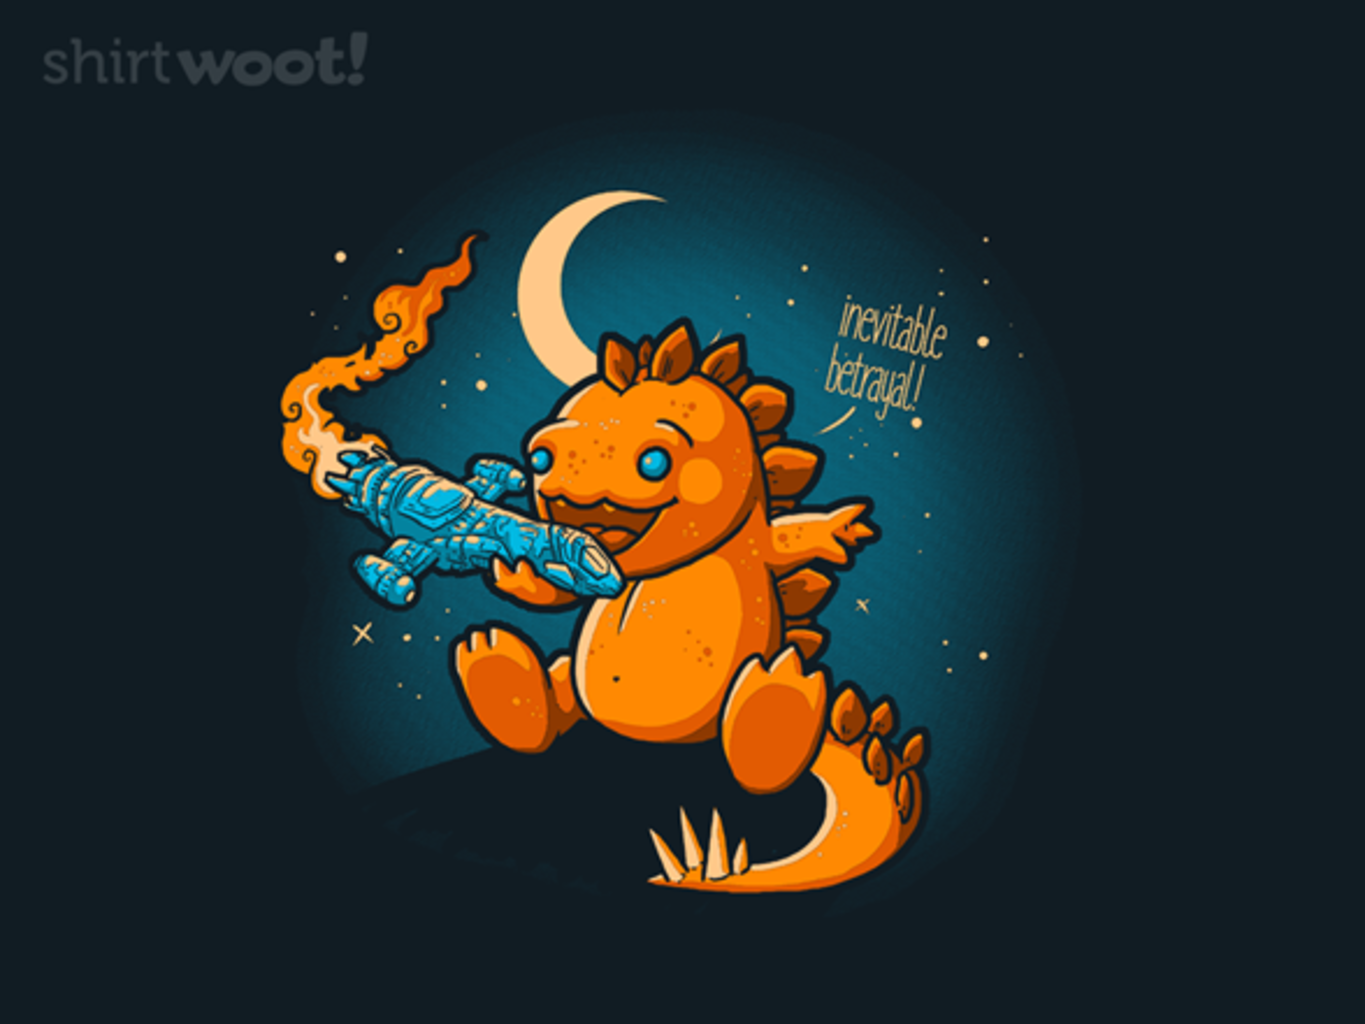 Woot!: The Inevitable Betrayal - $8.00 + $5 standard shipping